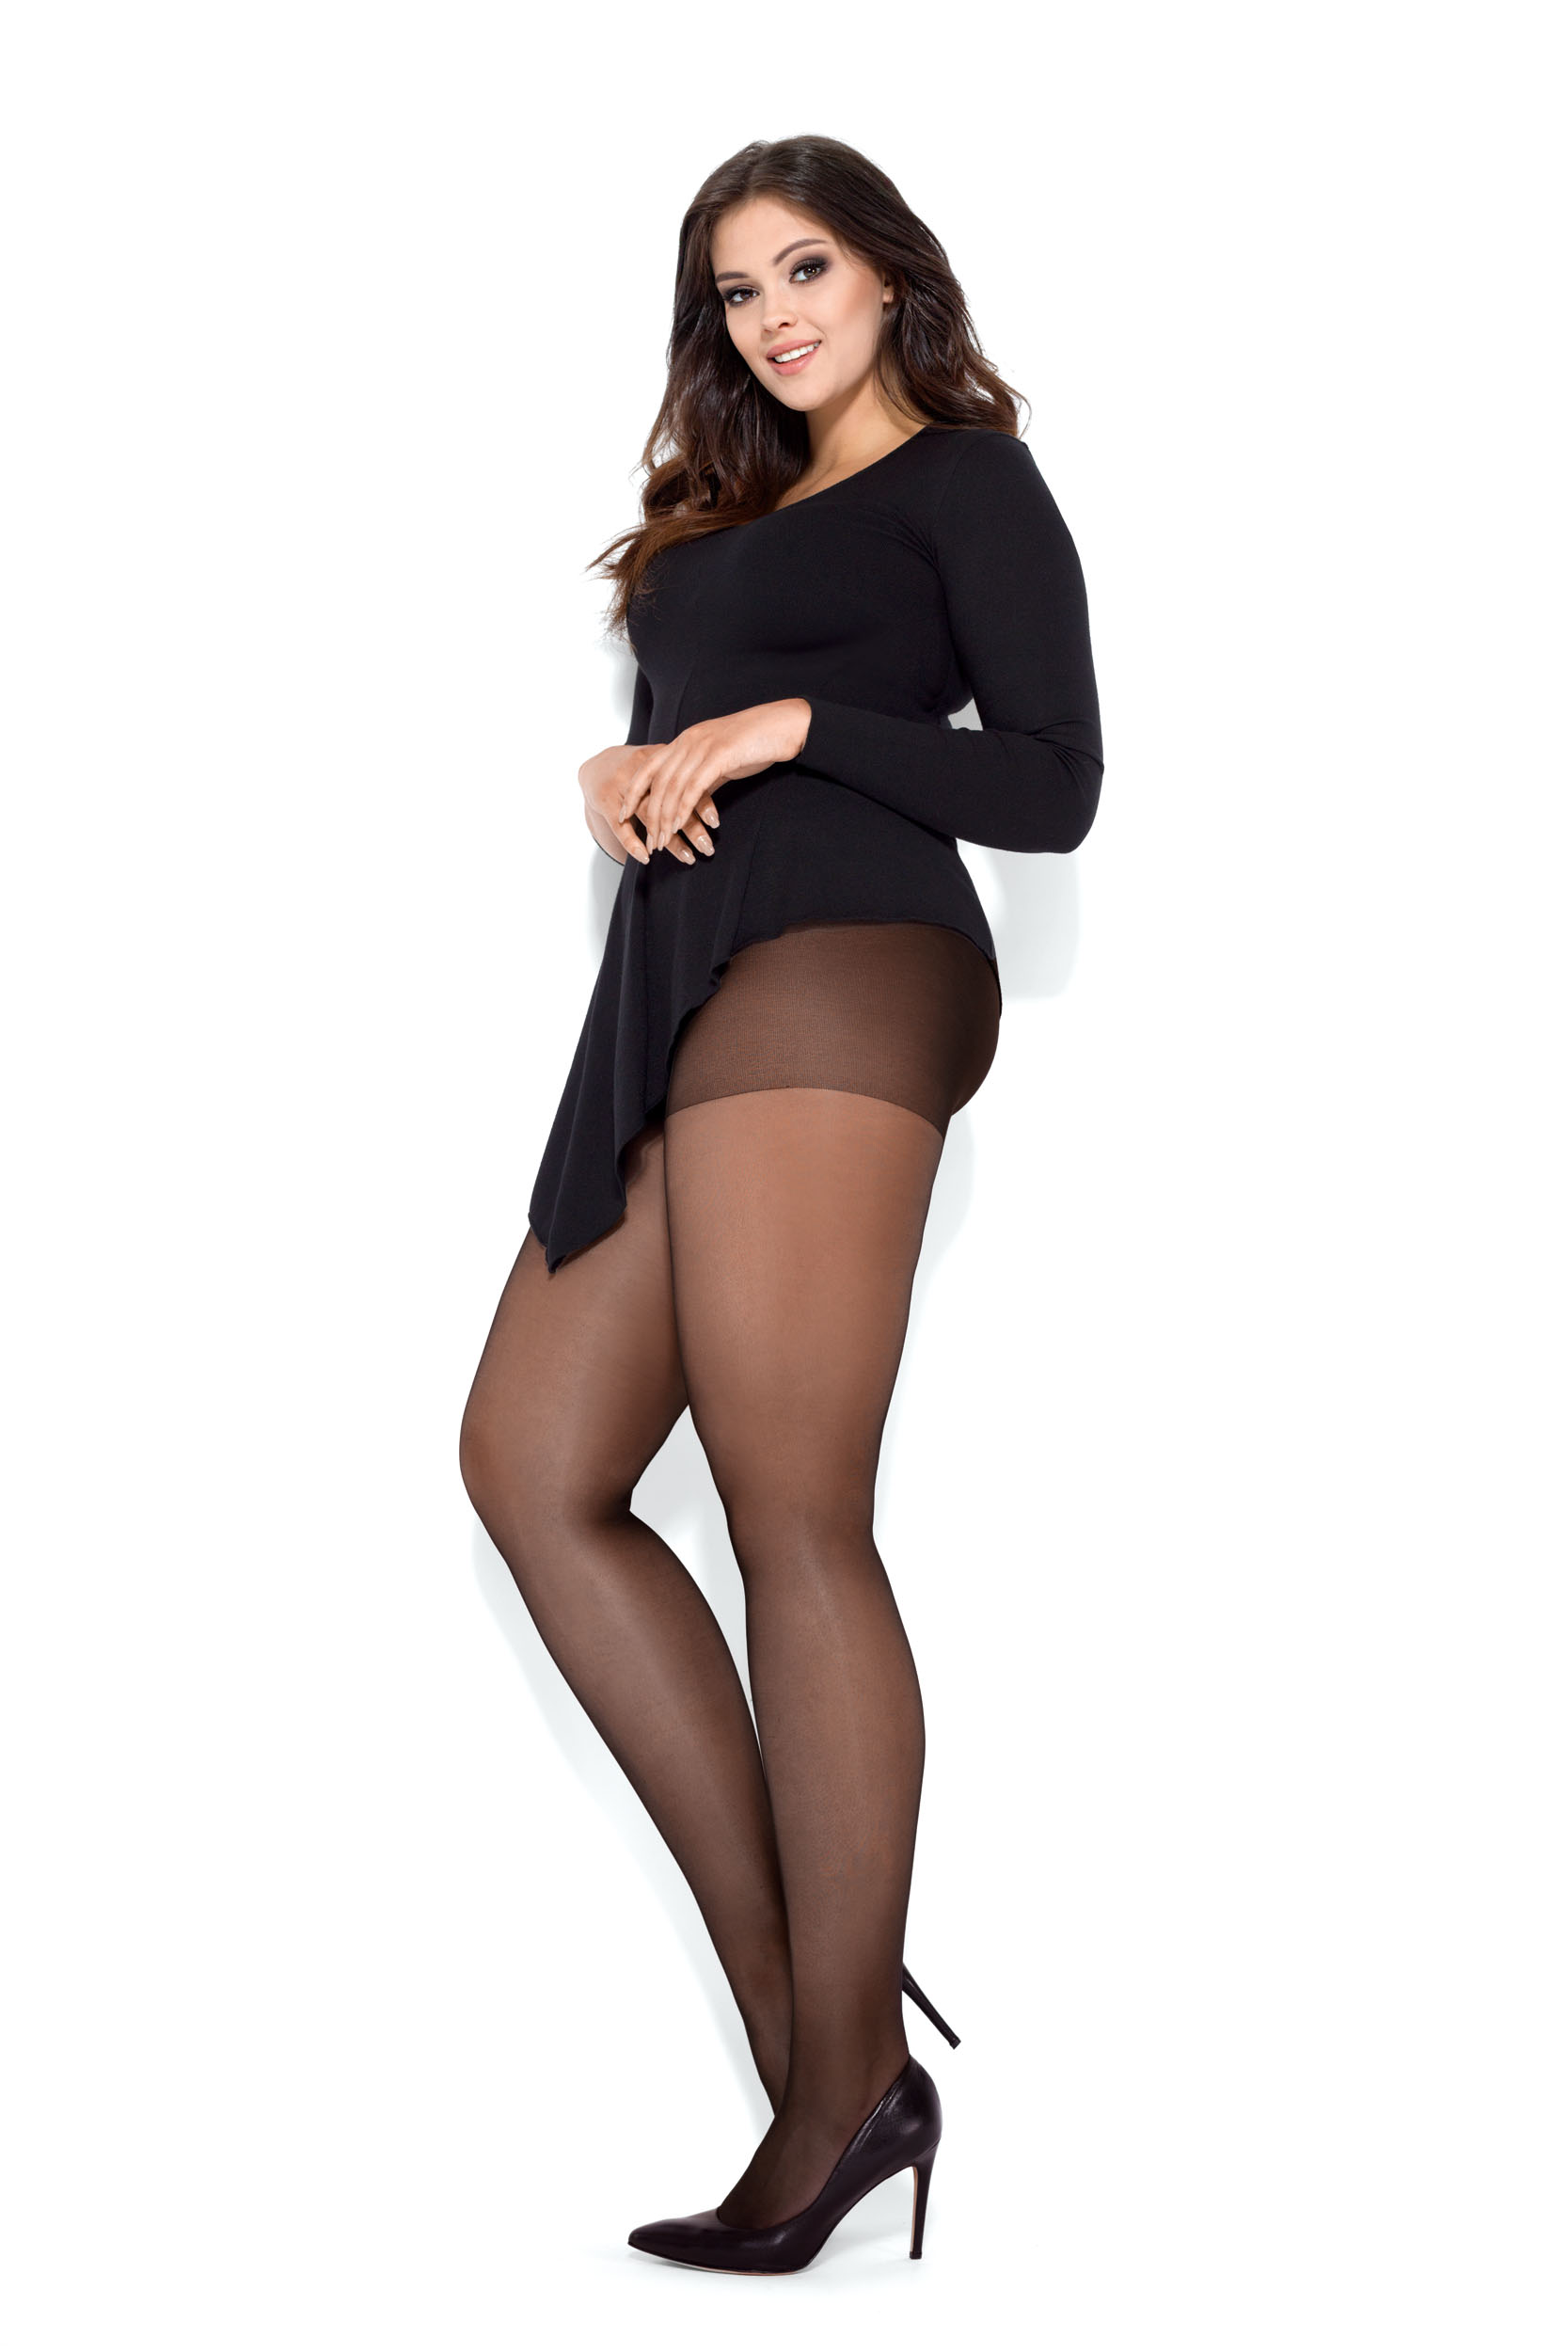 spanish-women-in-pantyhose-black-velvet-for-flower-picture-background